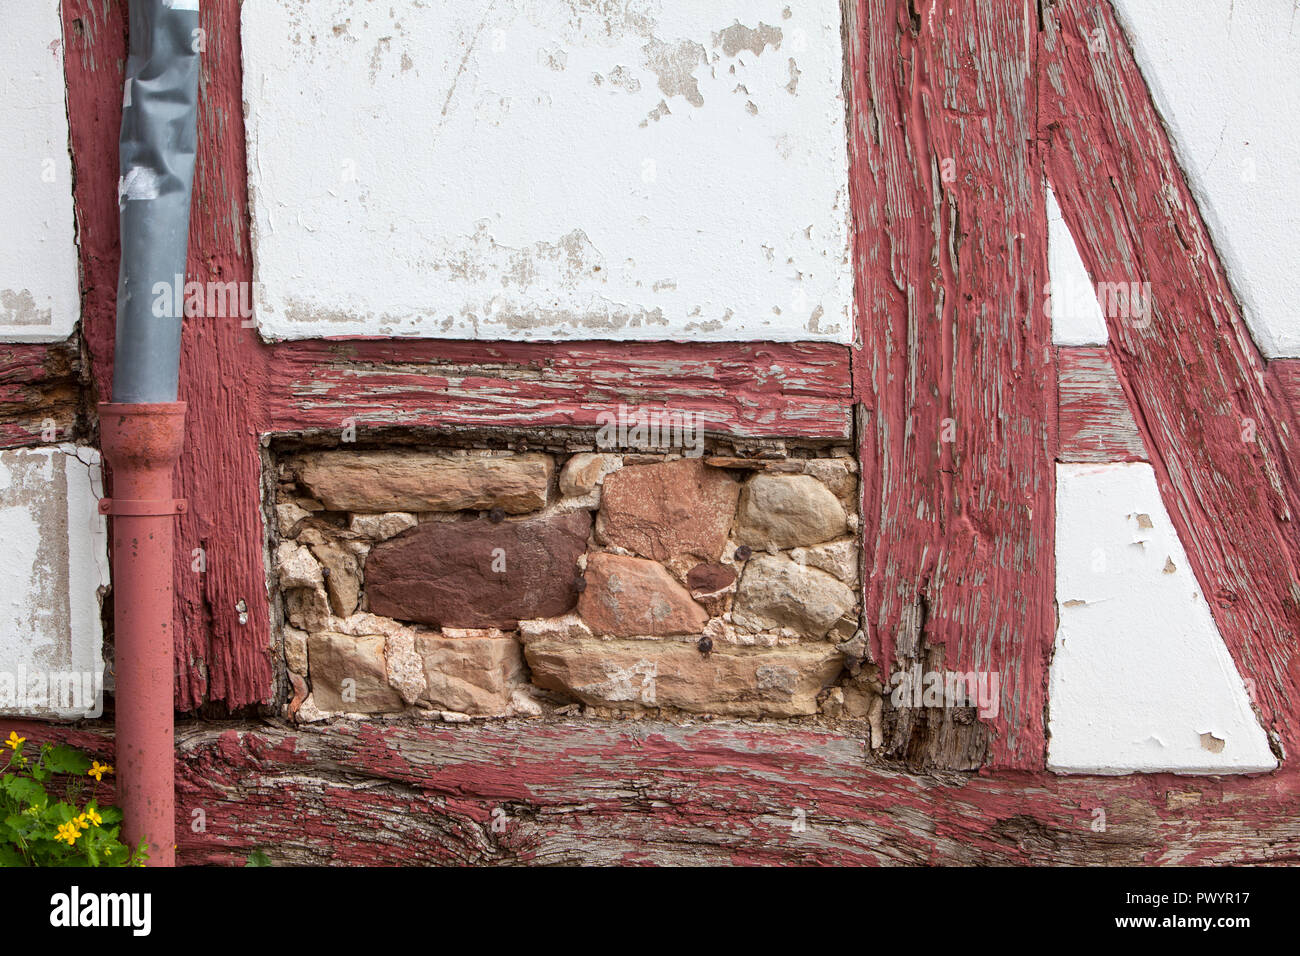 Damaged half-timbered house, Duderstadt, Lower Saxony, Germany, Europe Stock Photo